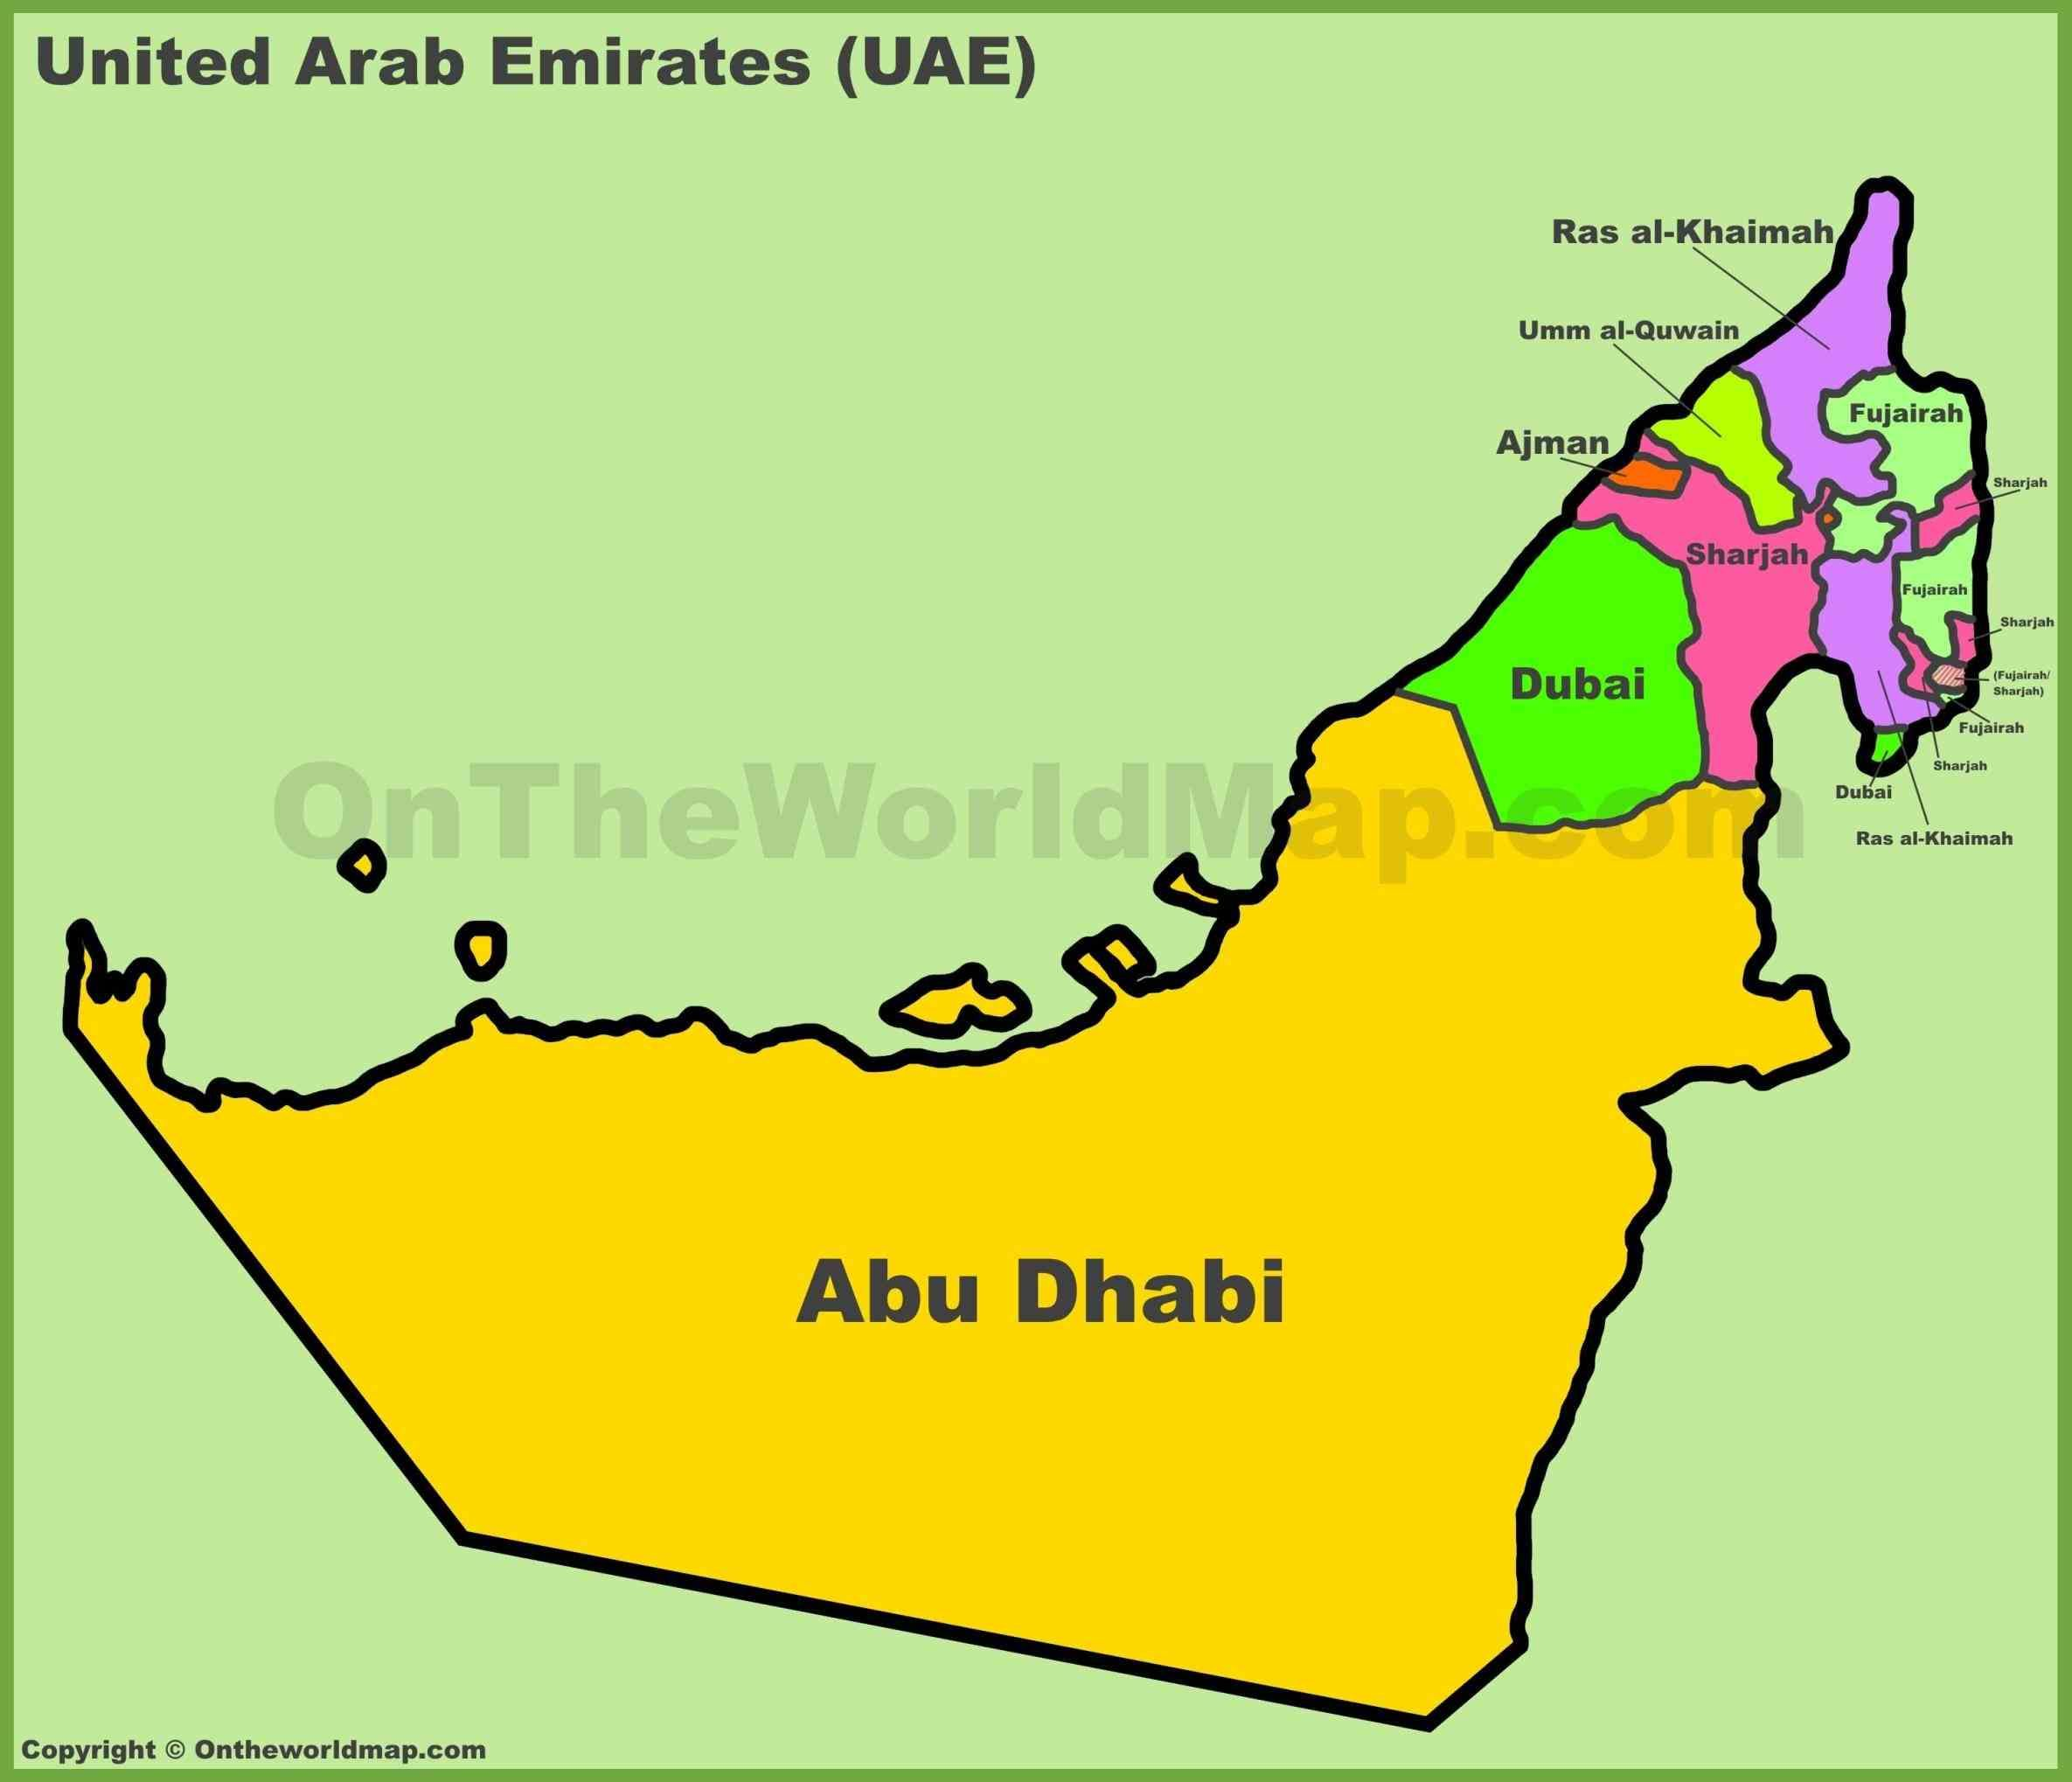 arab emirates map and travel information about in abu dhabi of dubai united arab emirates